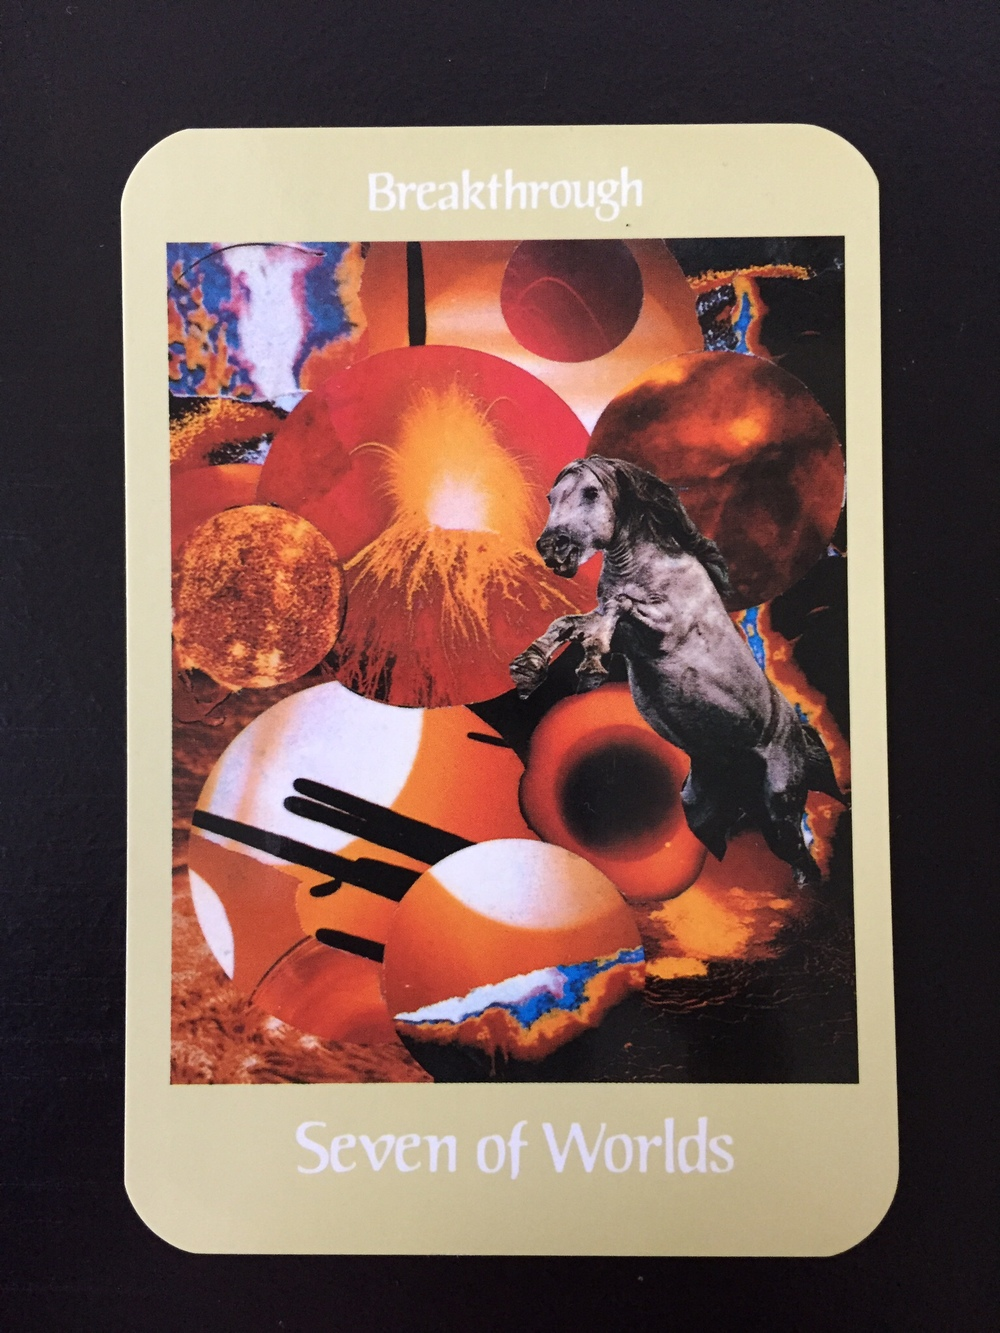 Card 1: Seven of Worlds - Breakthrough